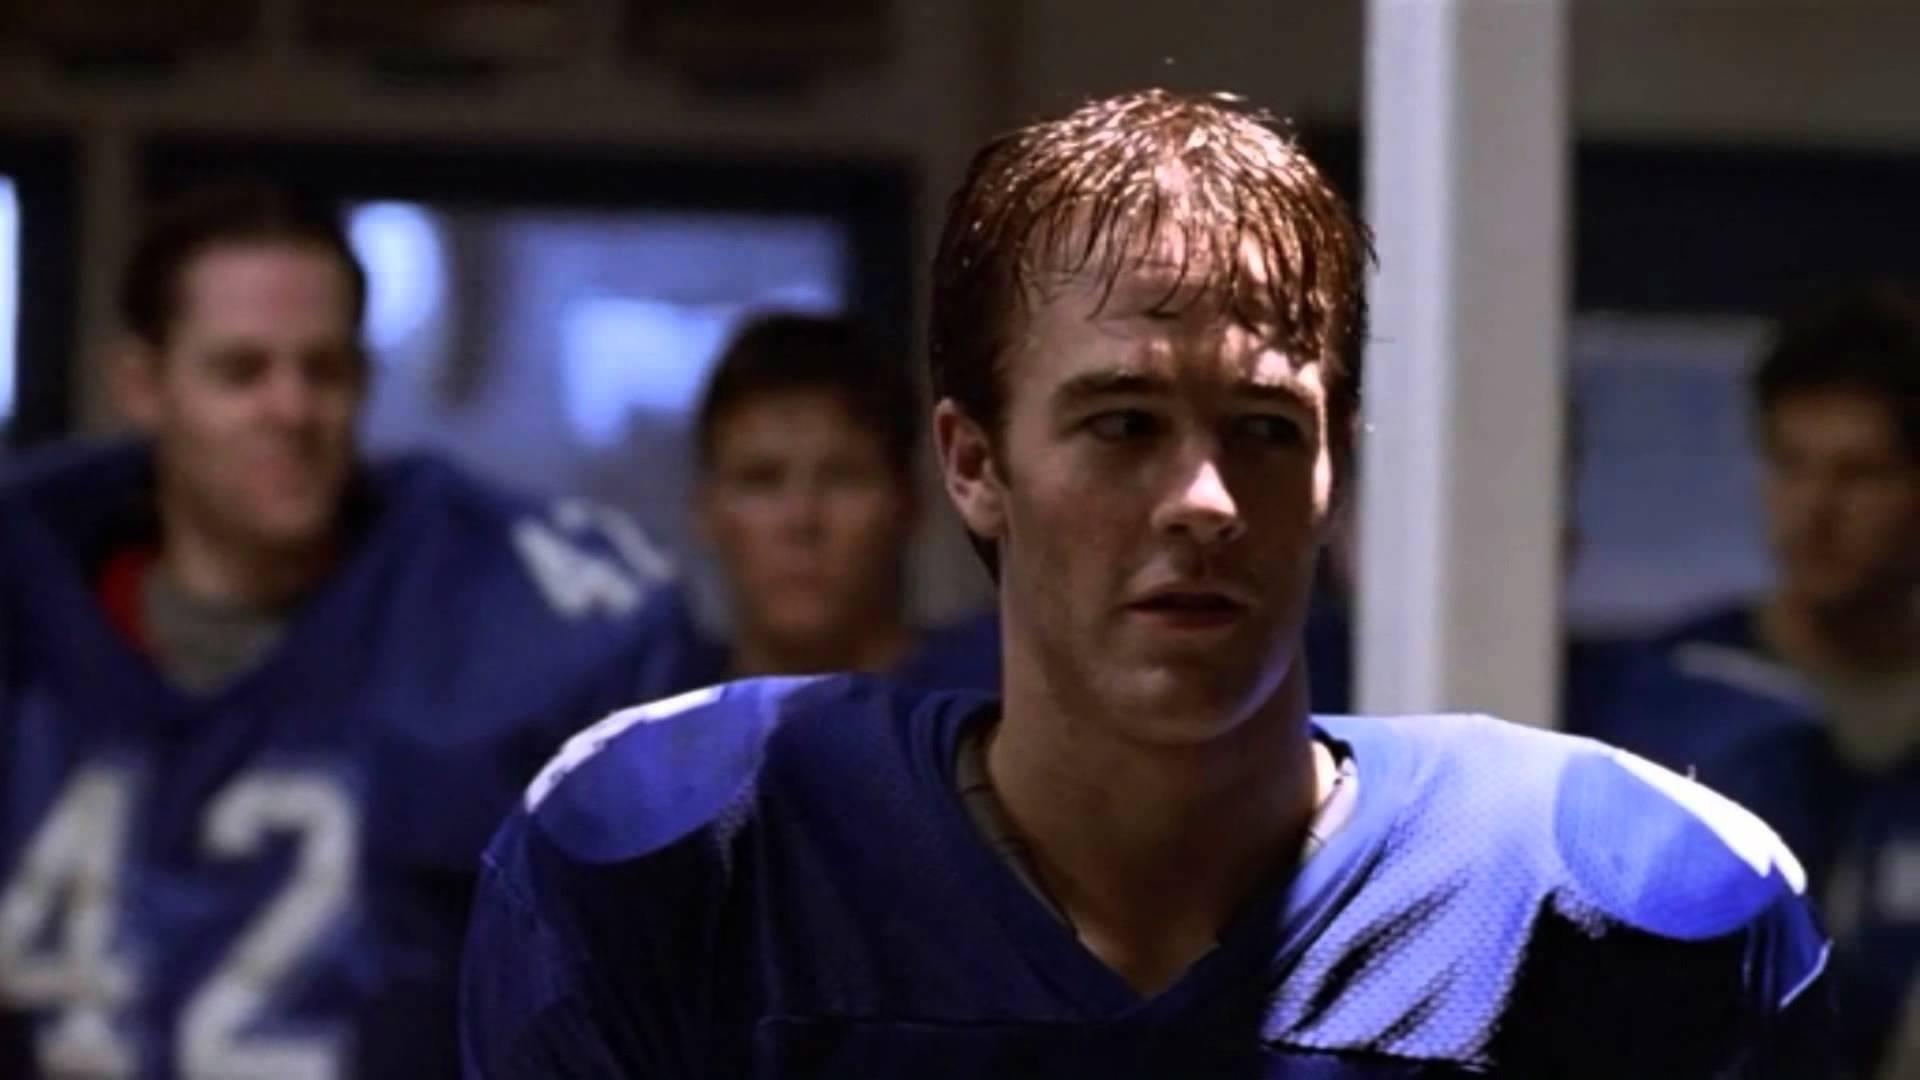 James Van Der Beek in Varsity Blues